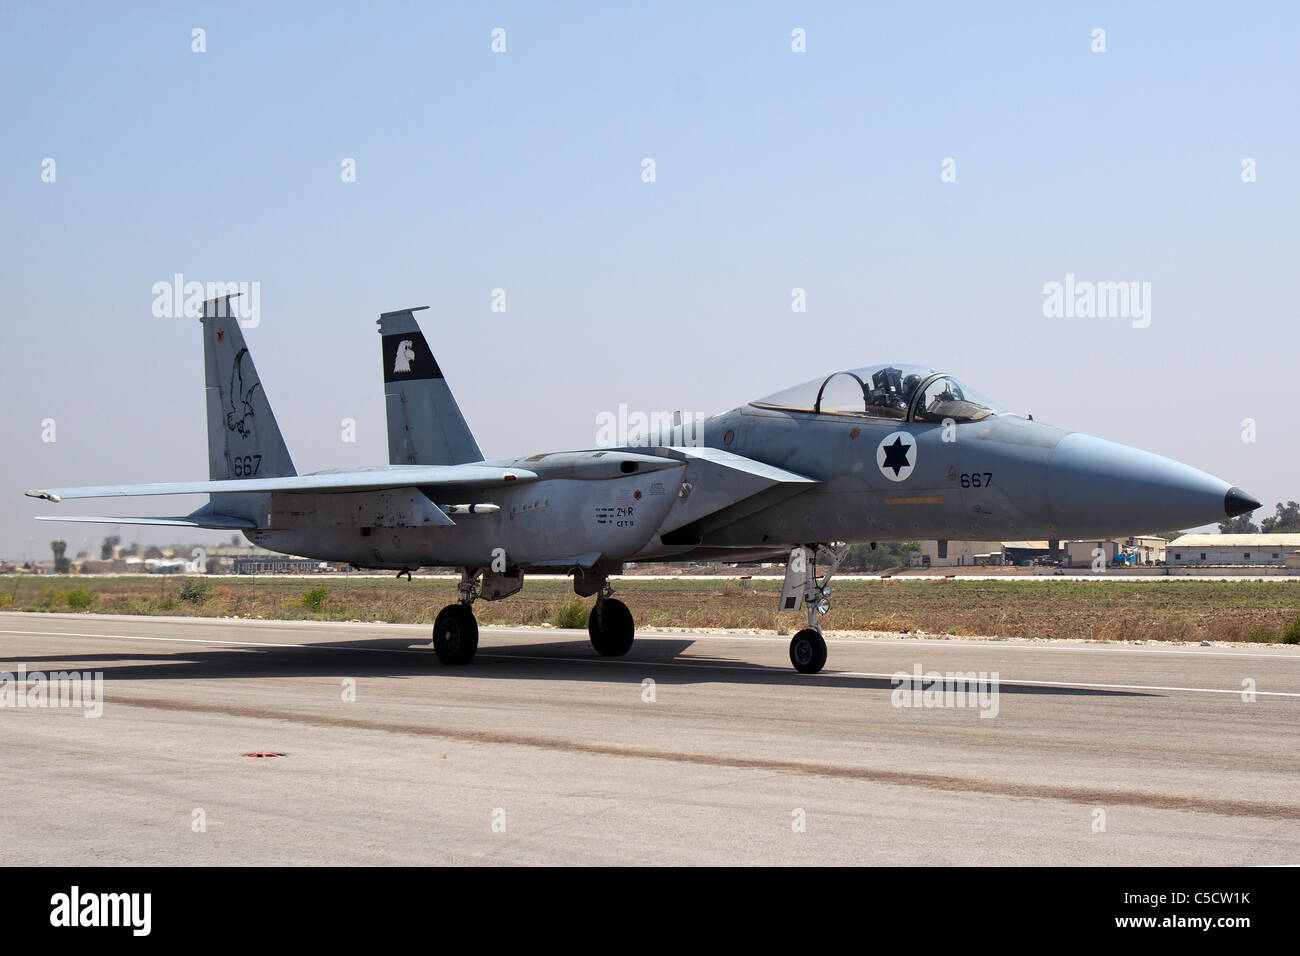 Israeli Air force F-15C Fighter jet on the ground Stock Photo